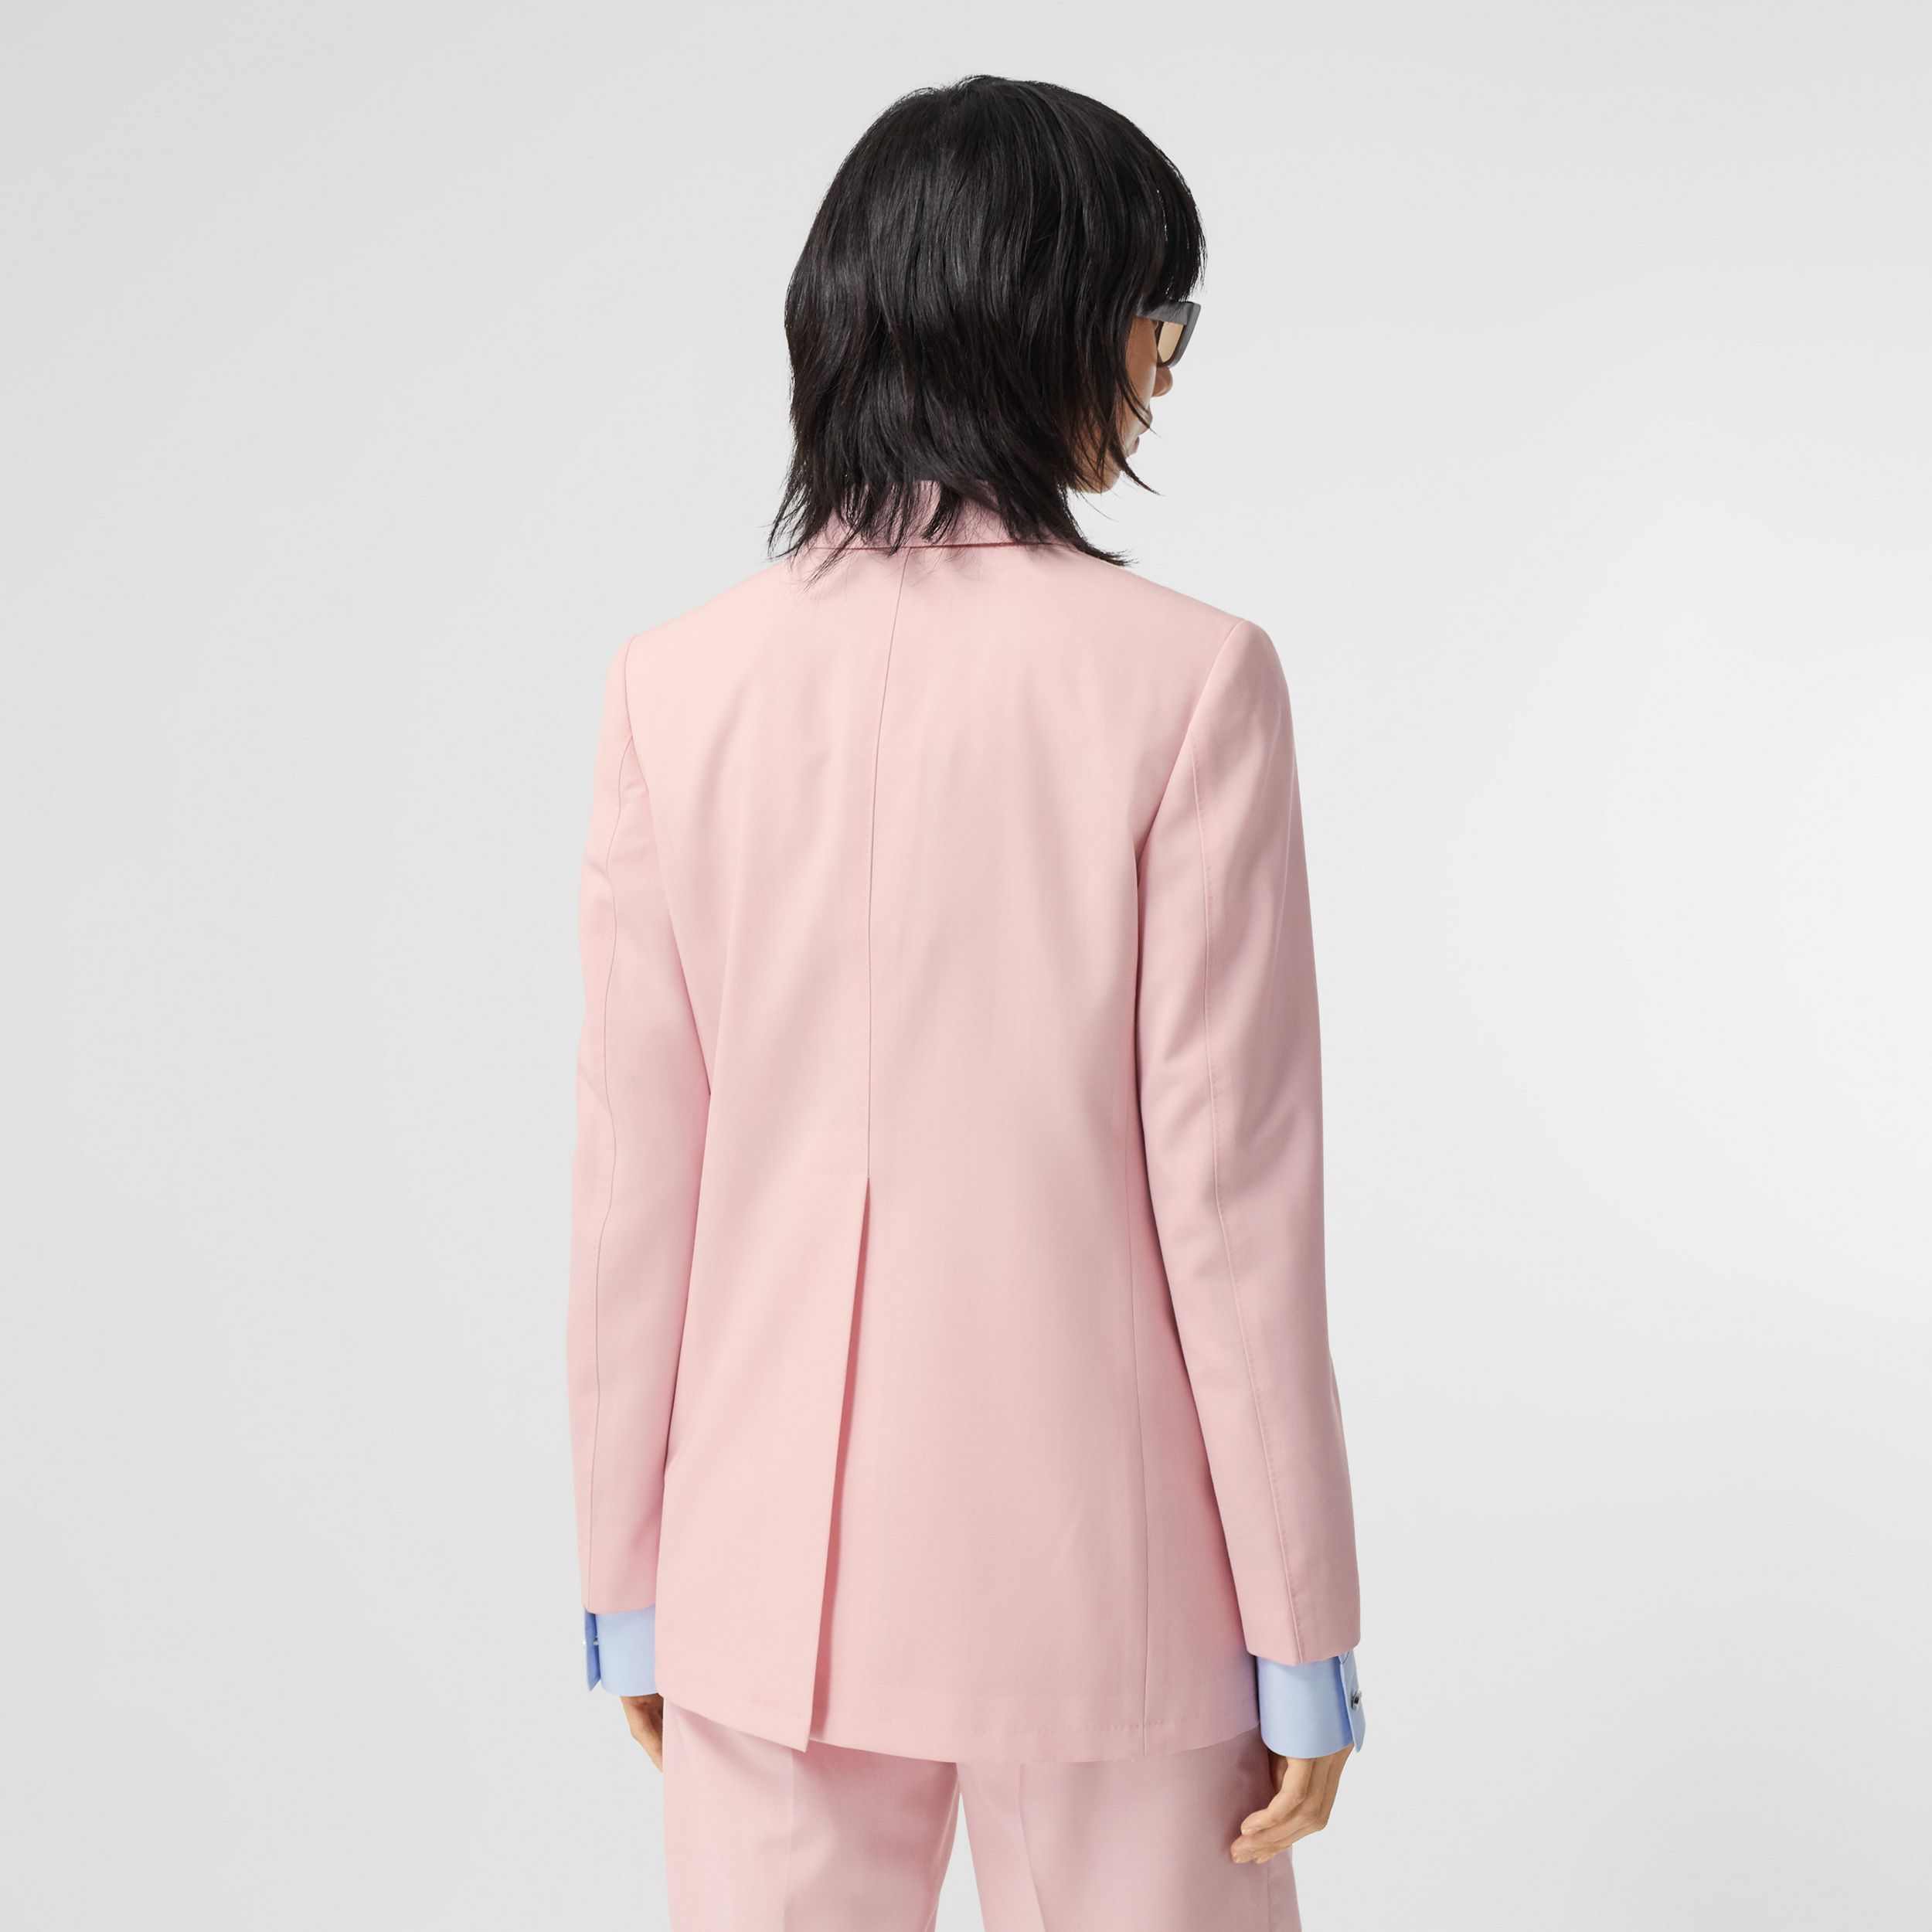 Tumbled Wool Double-breasted Blazer in Soft Pink - Women | Burberry - 3